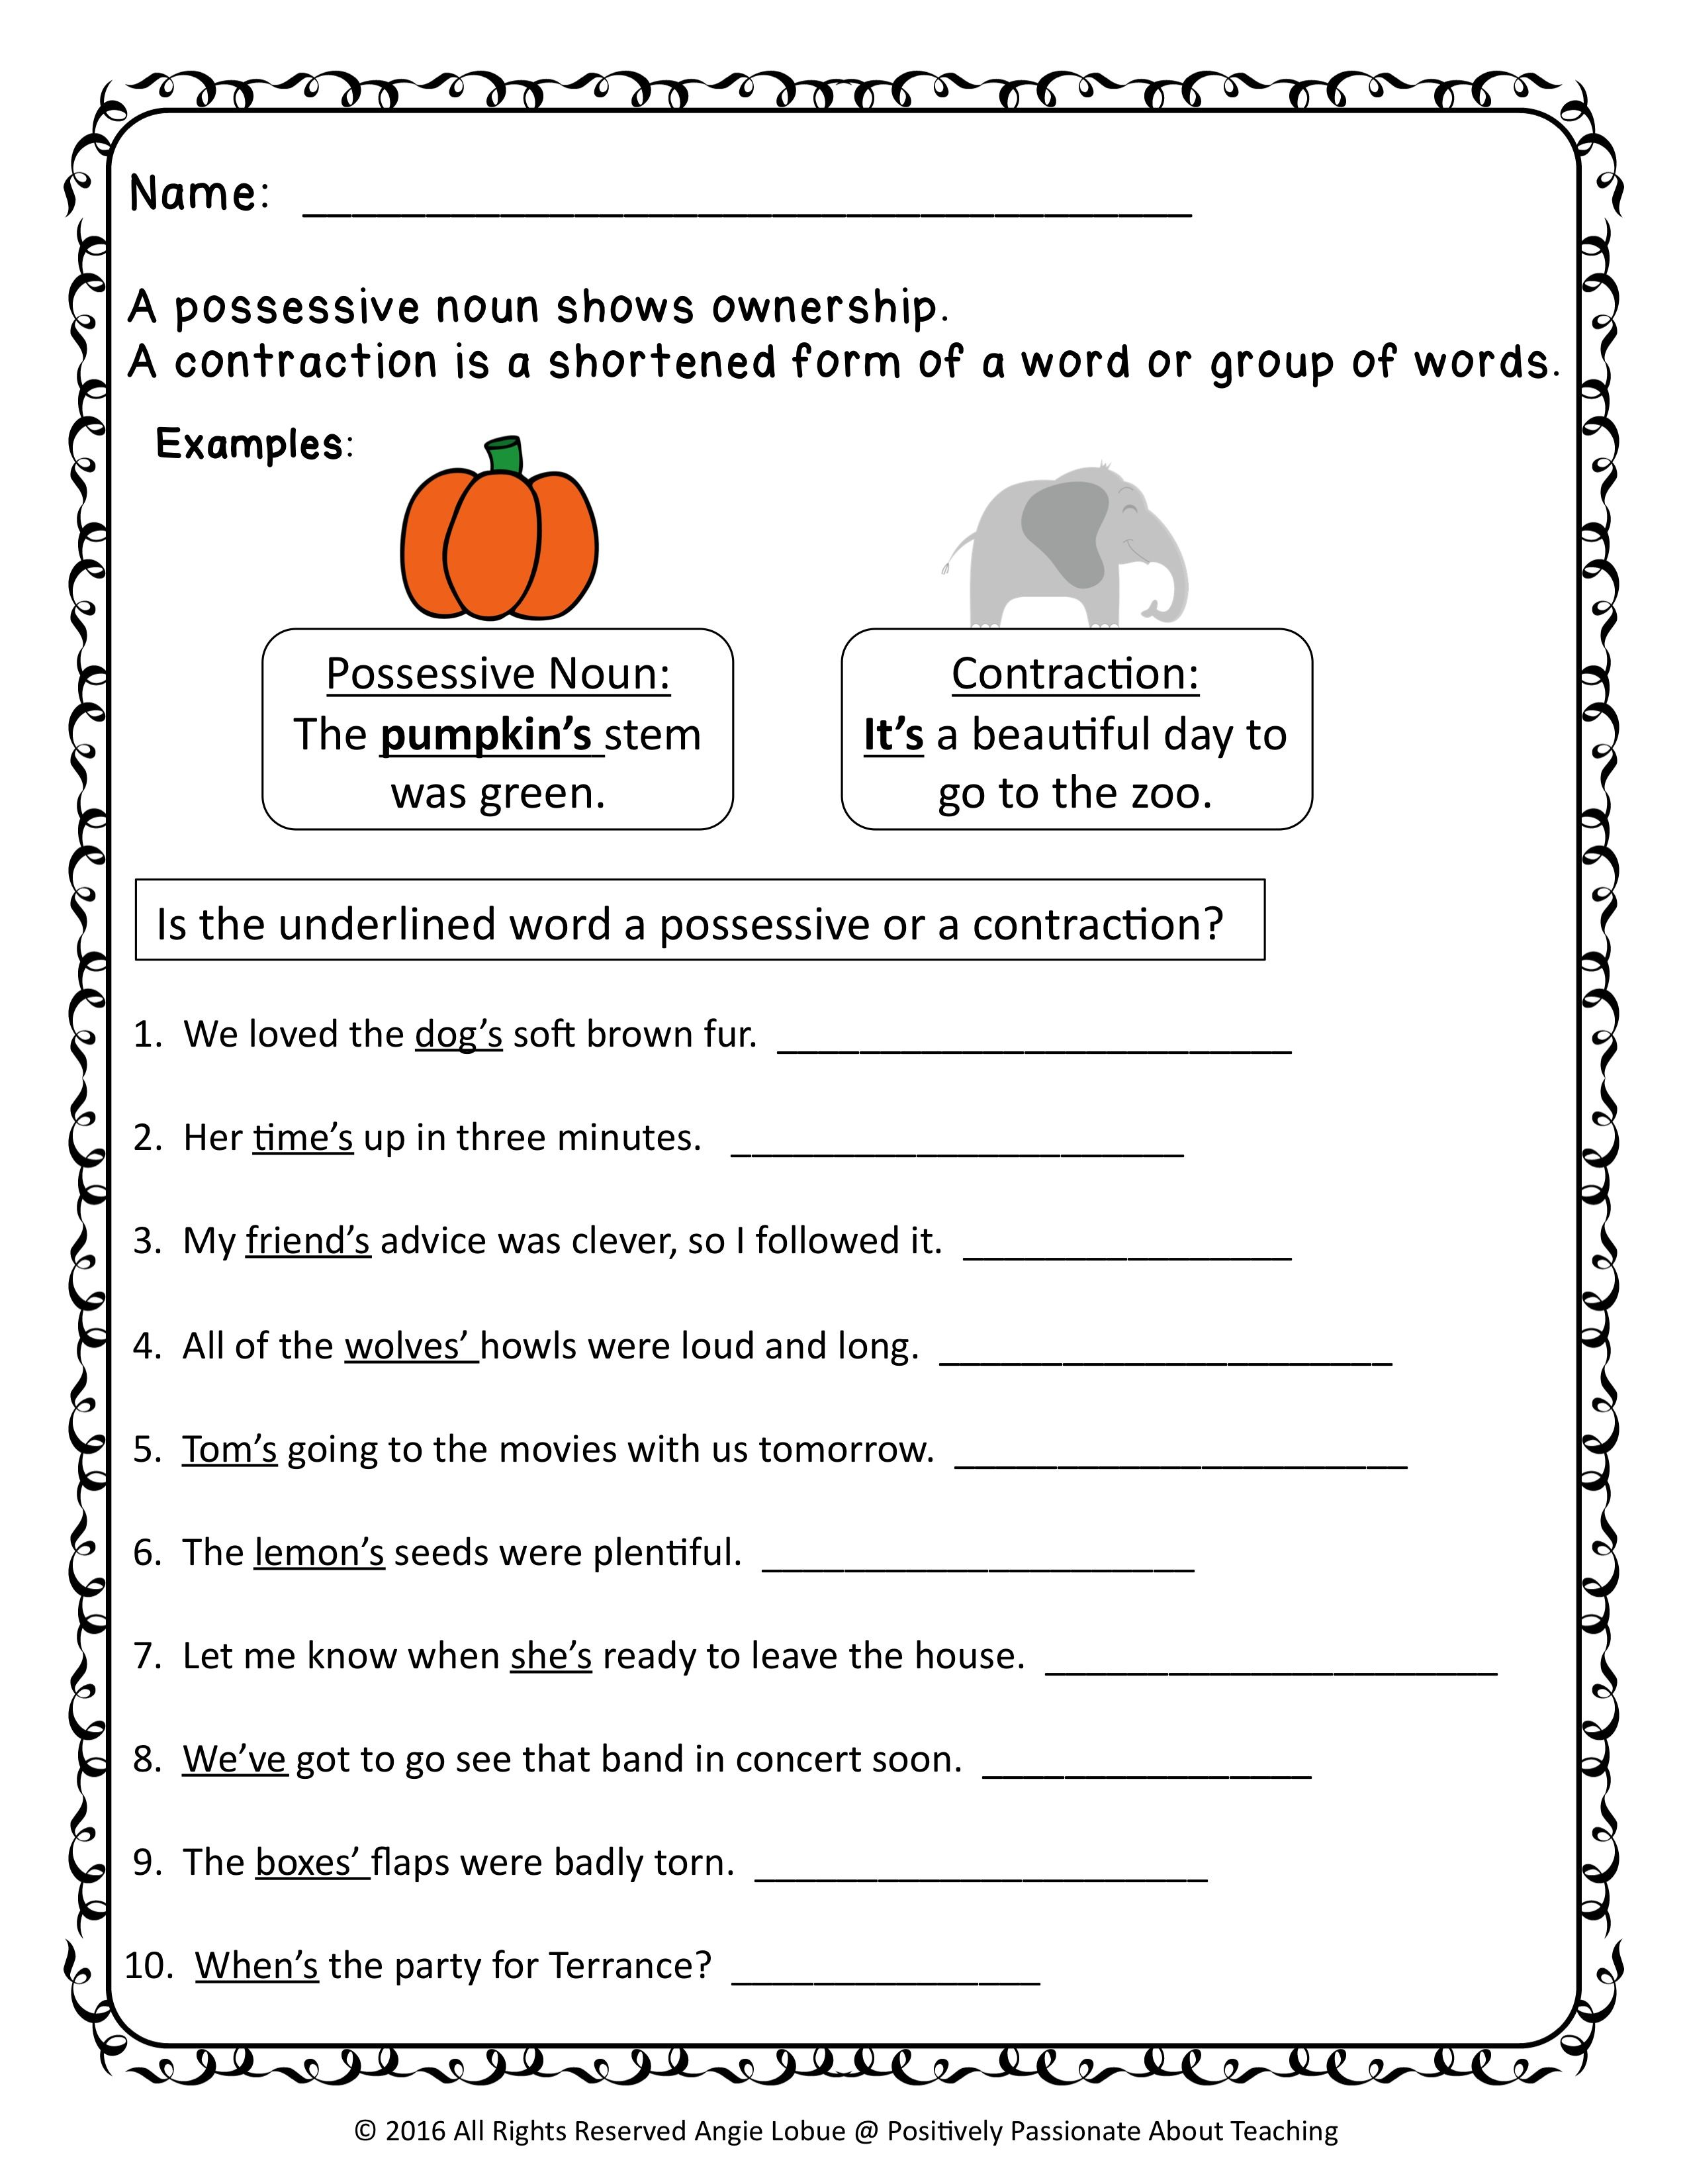 medium resolution of Possessive or contraction FREEBIE -includes answer key  www.facebook.com/positivelypassionateaboutteaching   Engaging lesson plans